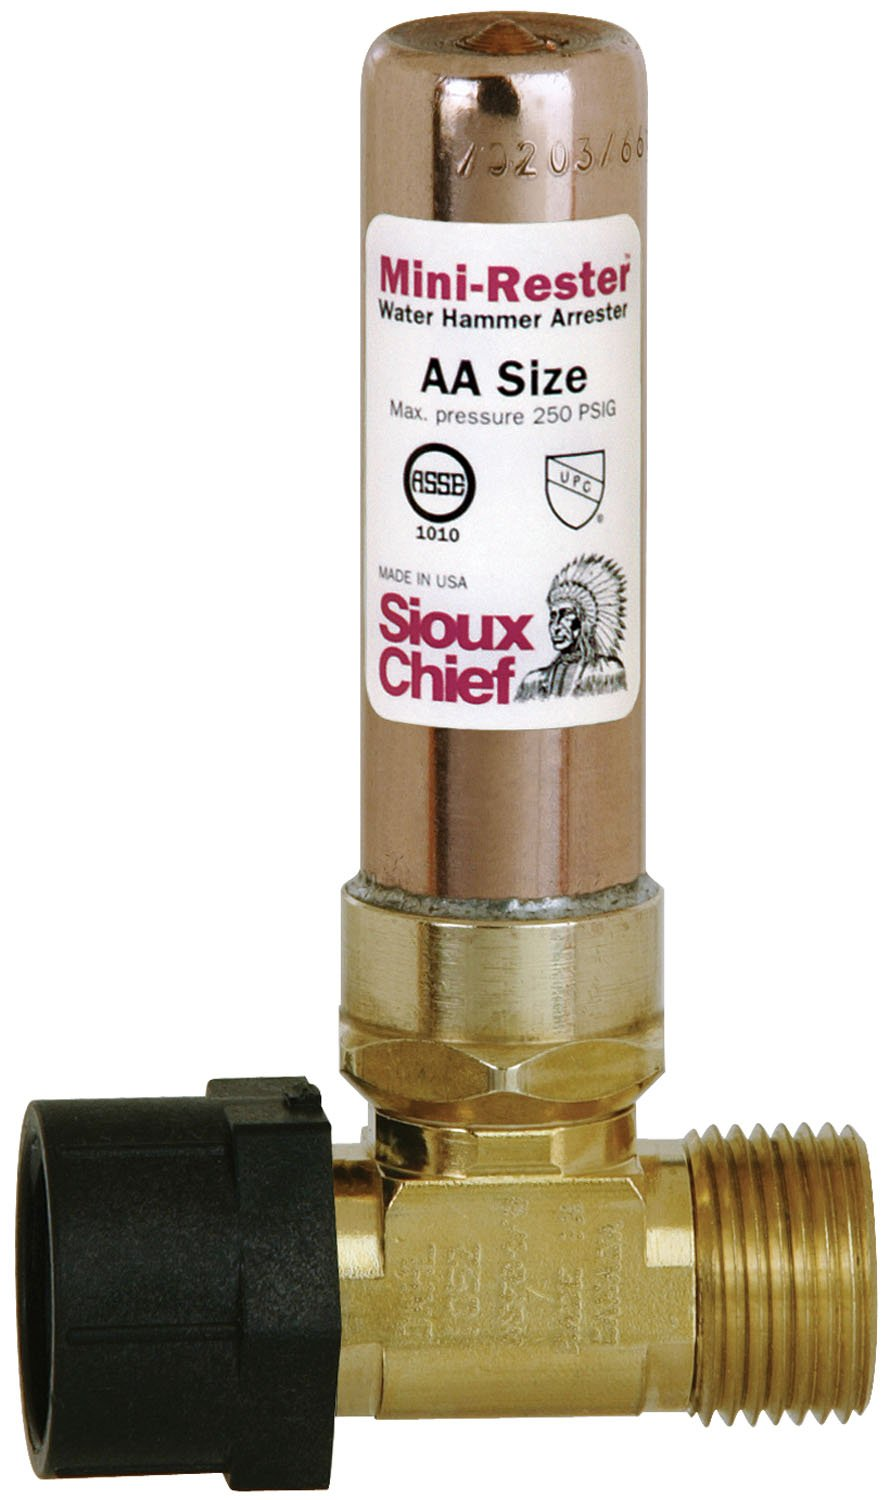 Sioux Chief Mfg 660-TK Female Swivel Ballcock Nut by Male Ballcock Thread Mini Rester